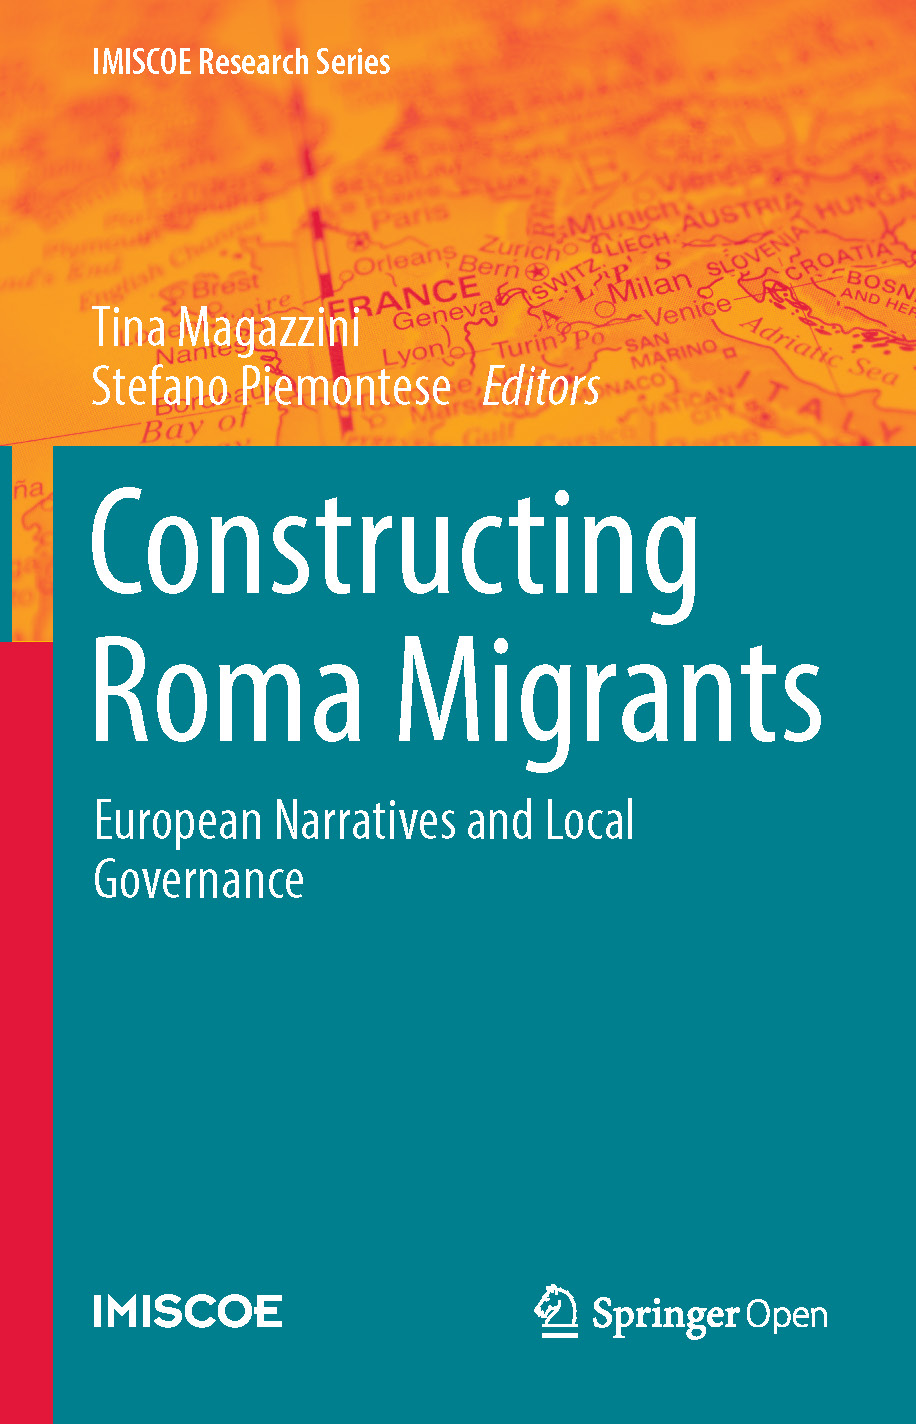 Cover of Constructing Roma Migrants